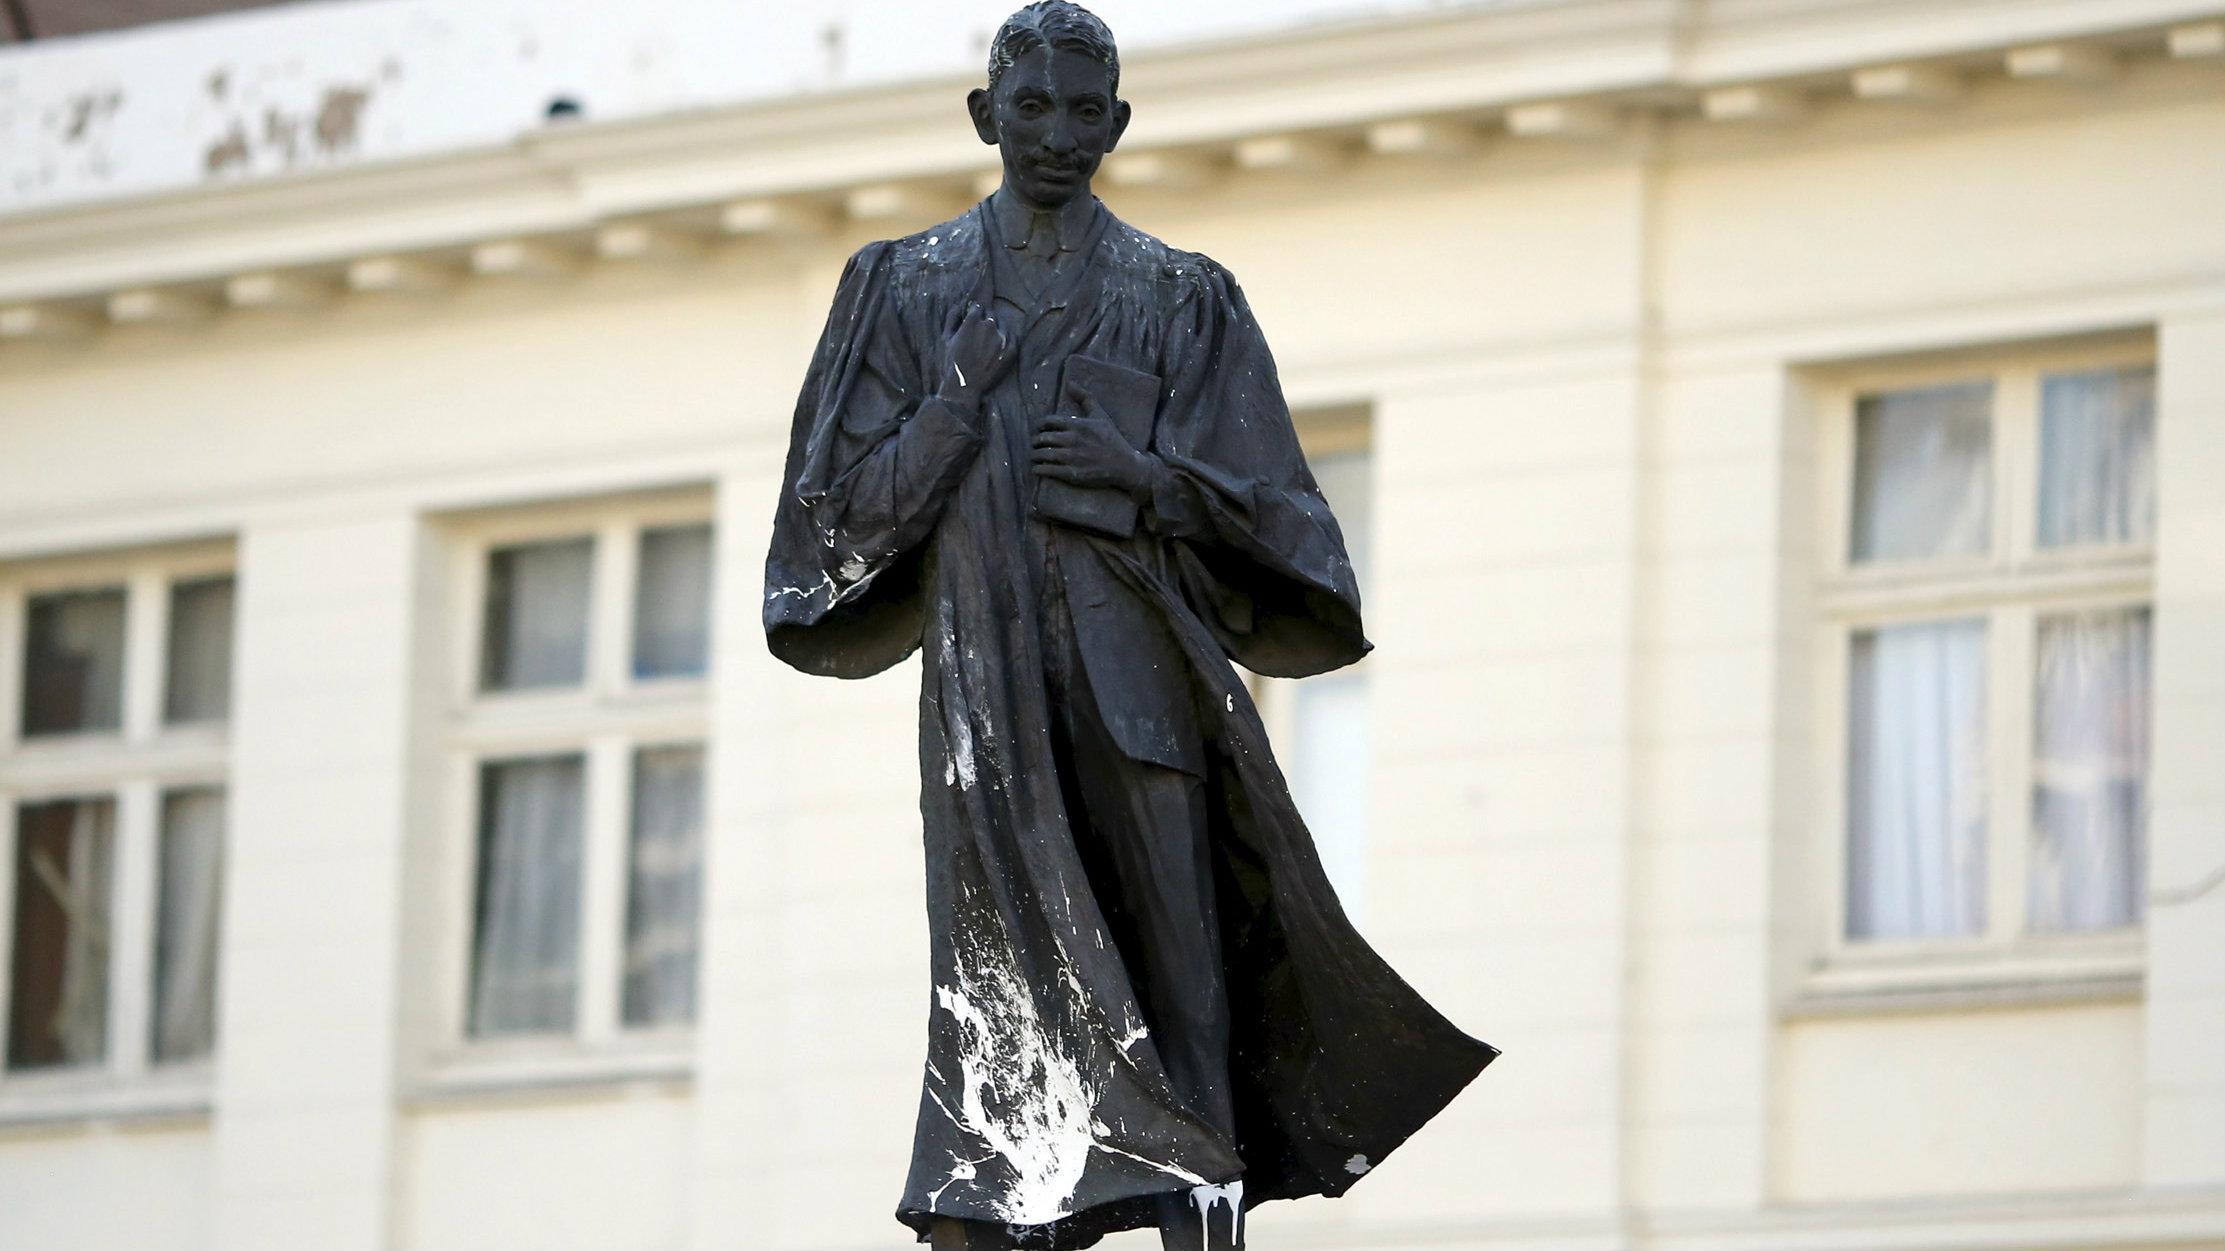 A statue of Mahatma Gandhi is seen after it was vandalized with white paint at Ghandi Square in Johannesburg April 13, 2015.